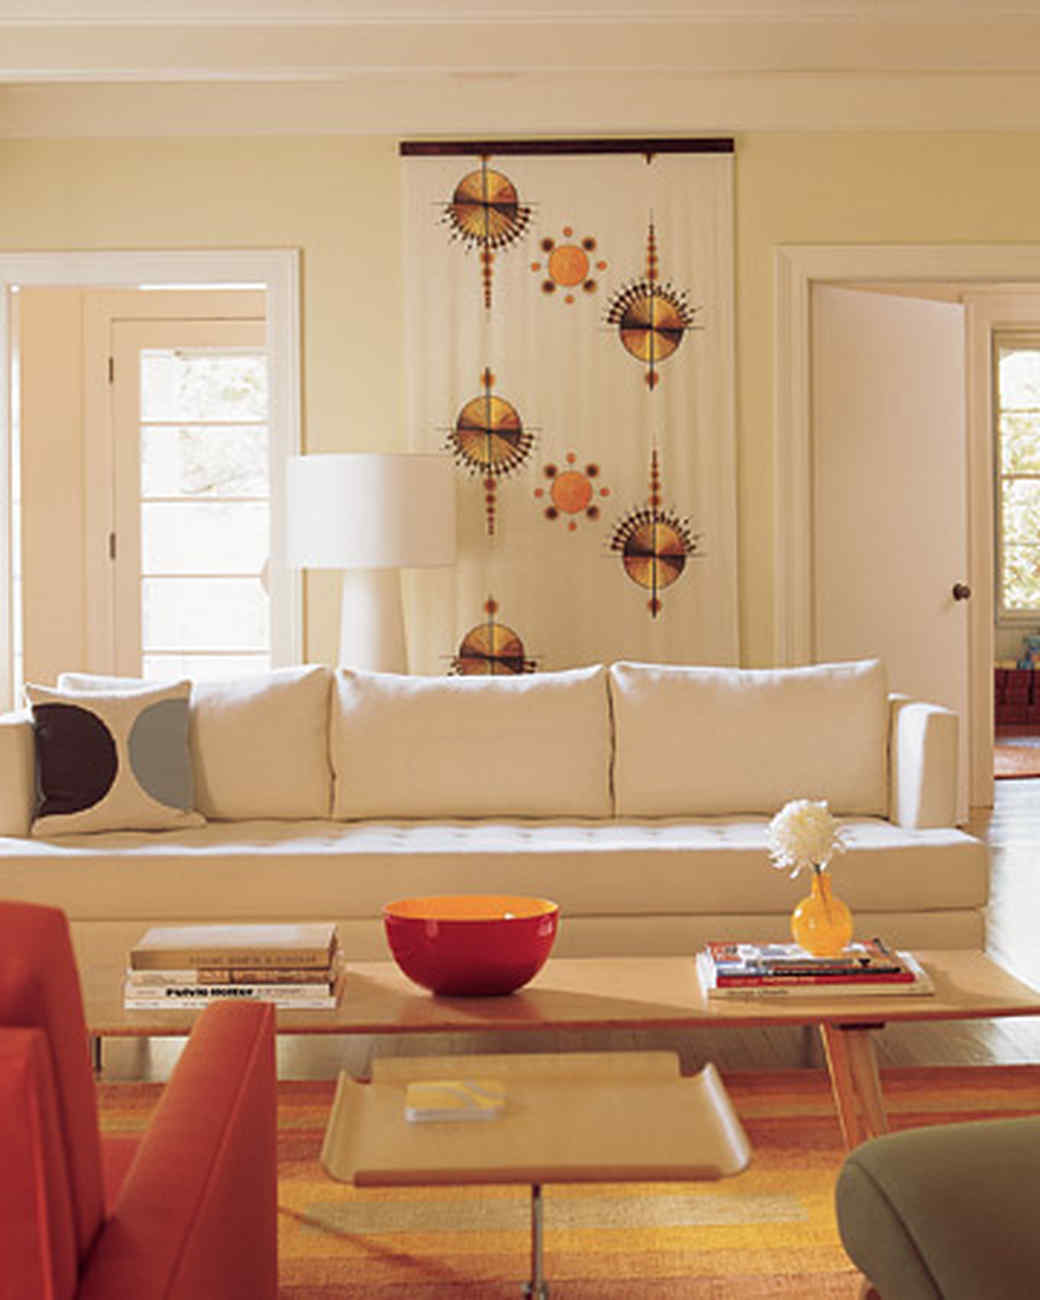 mpa102490_0307_couches.jpg